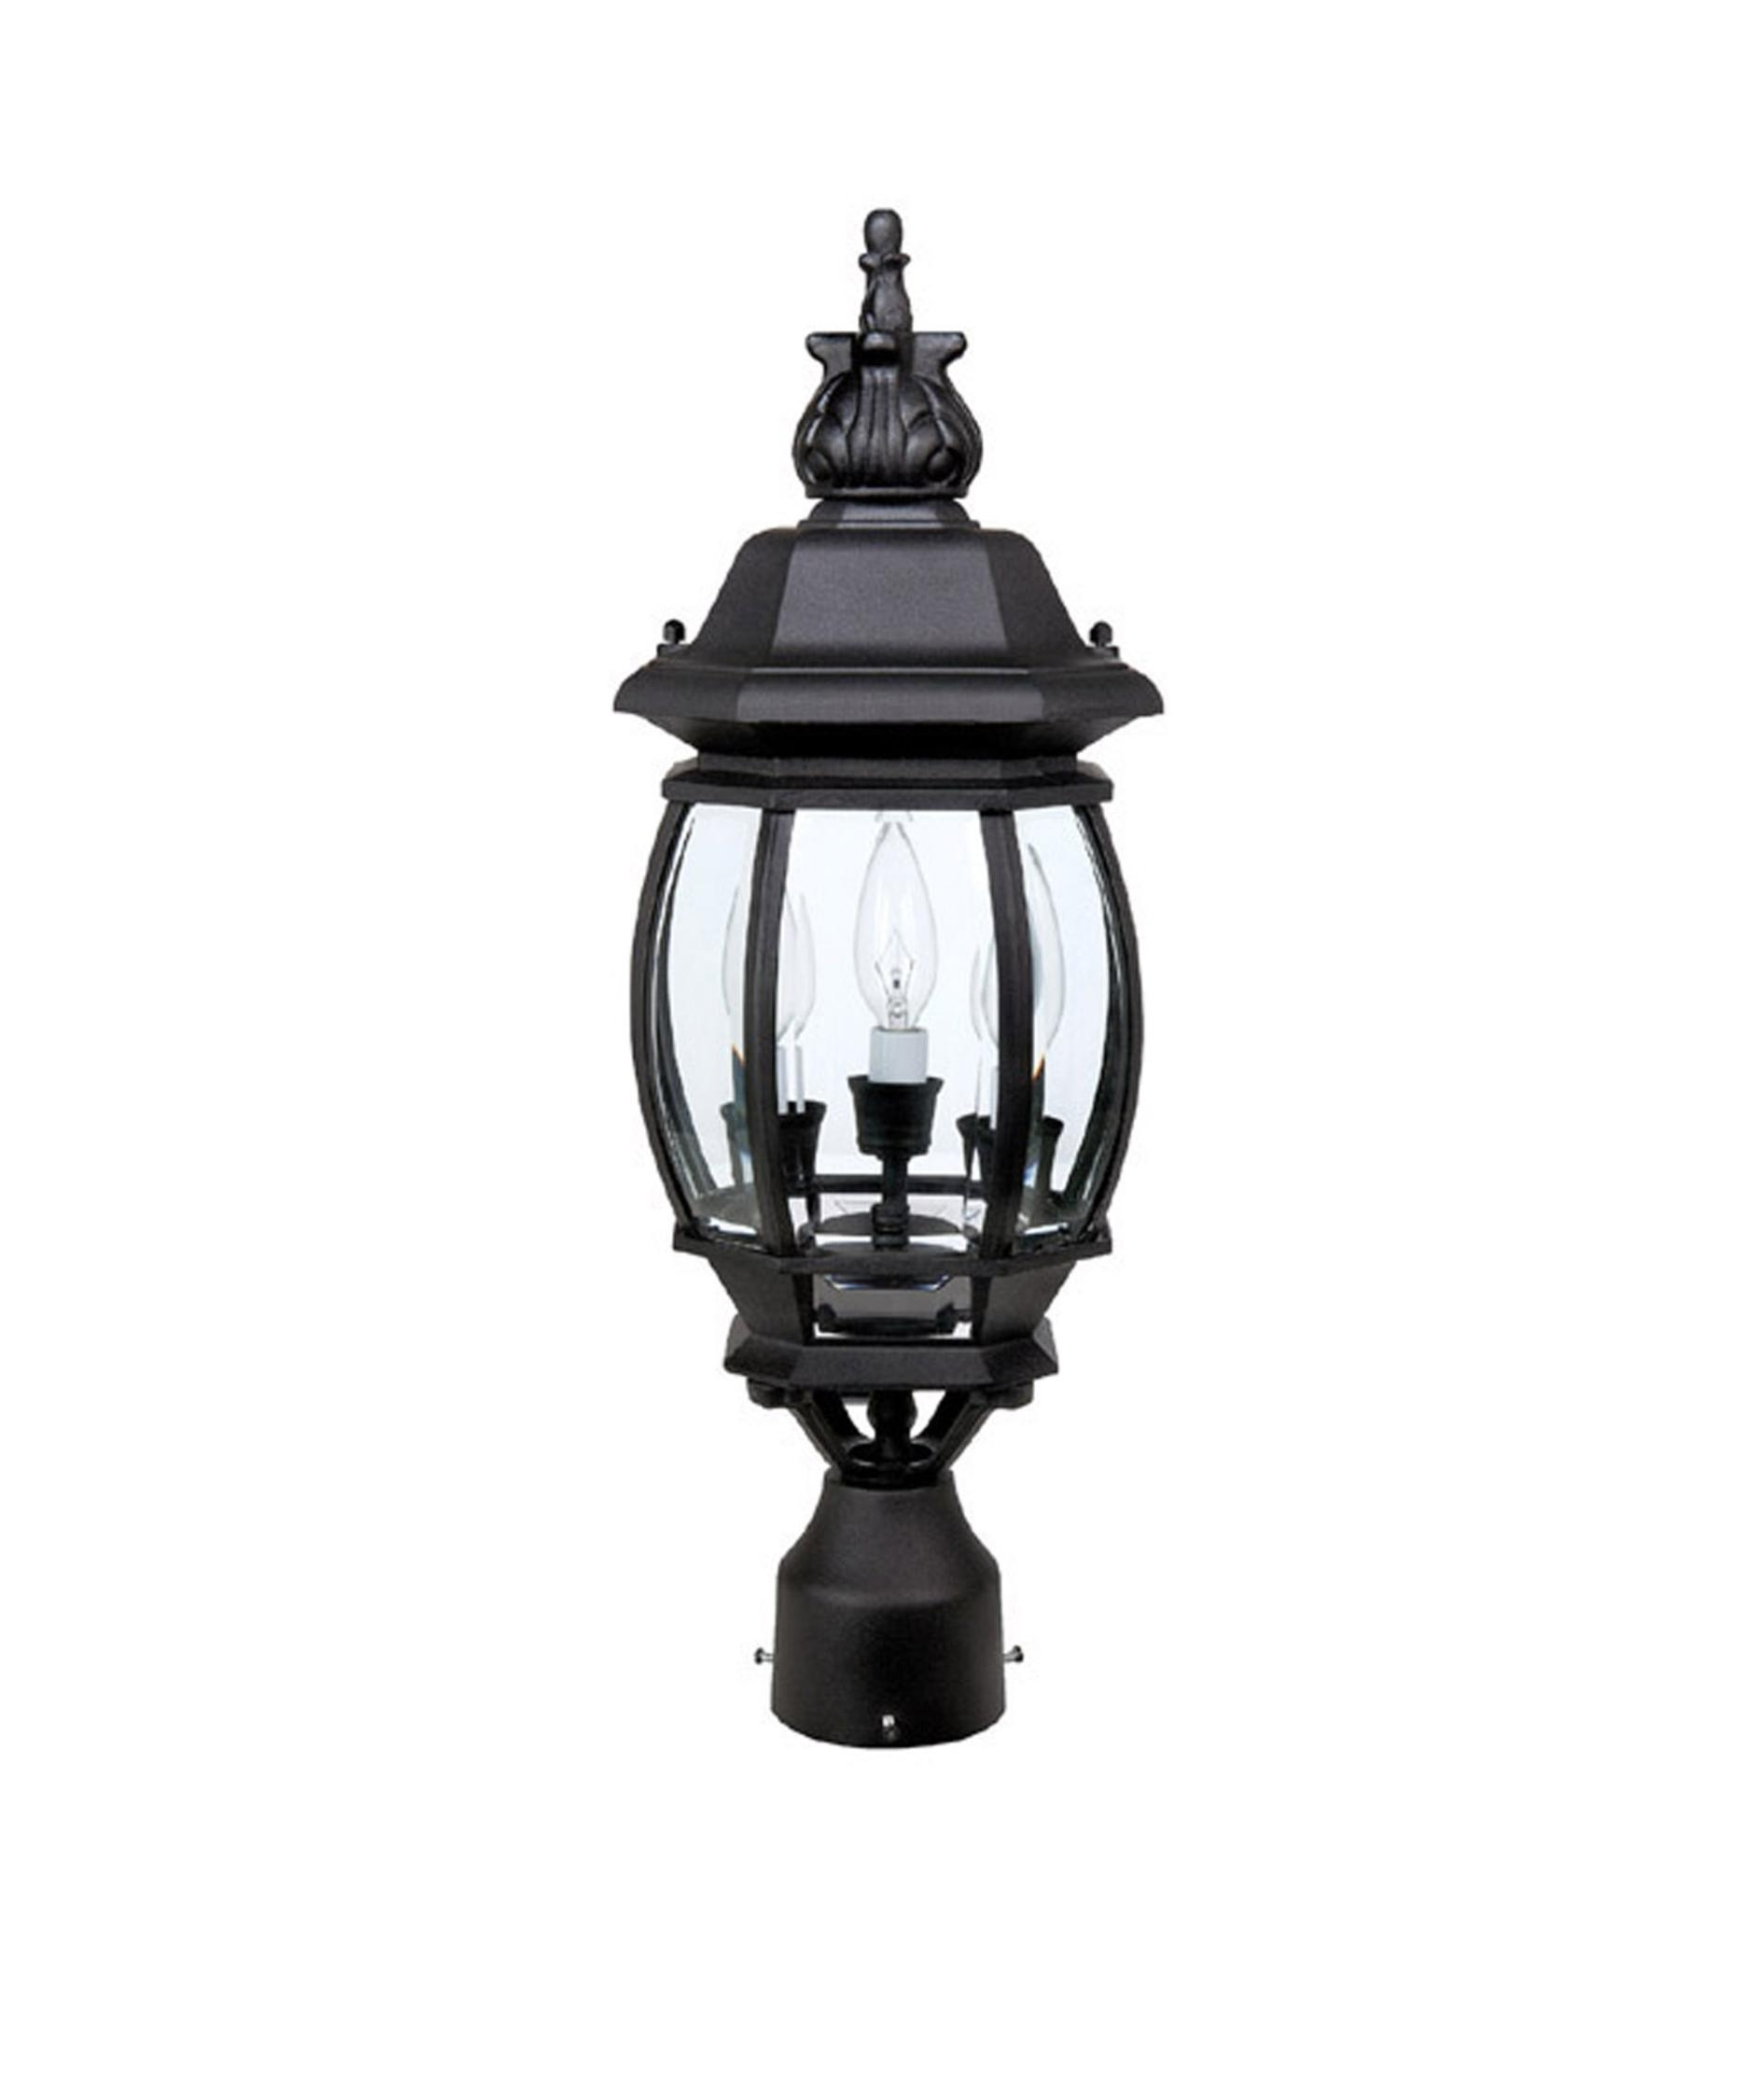 2019 Capital Lighting 9865 French Country 8 Inch Wide 3 Light Outdoor Regarding Outdoor Hanging Post Lights (View 8 of 20)